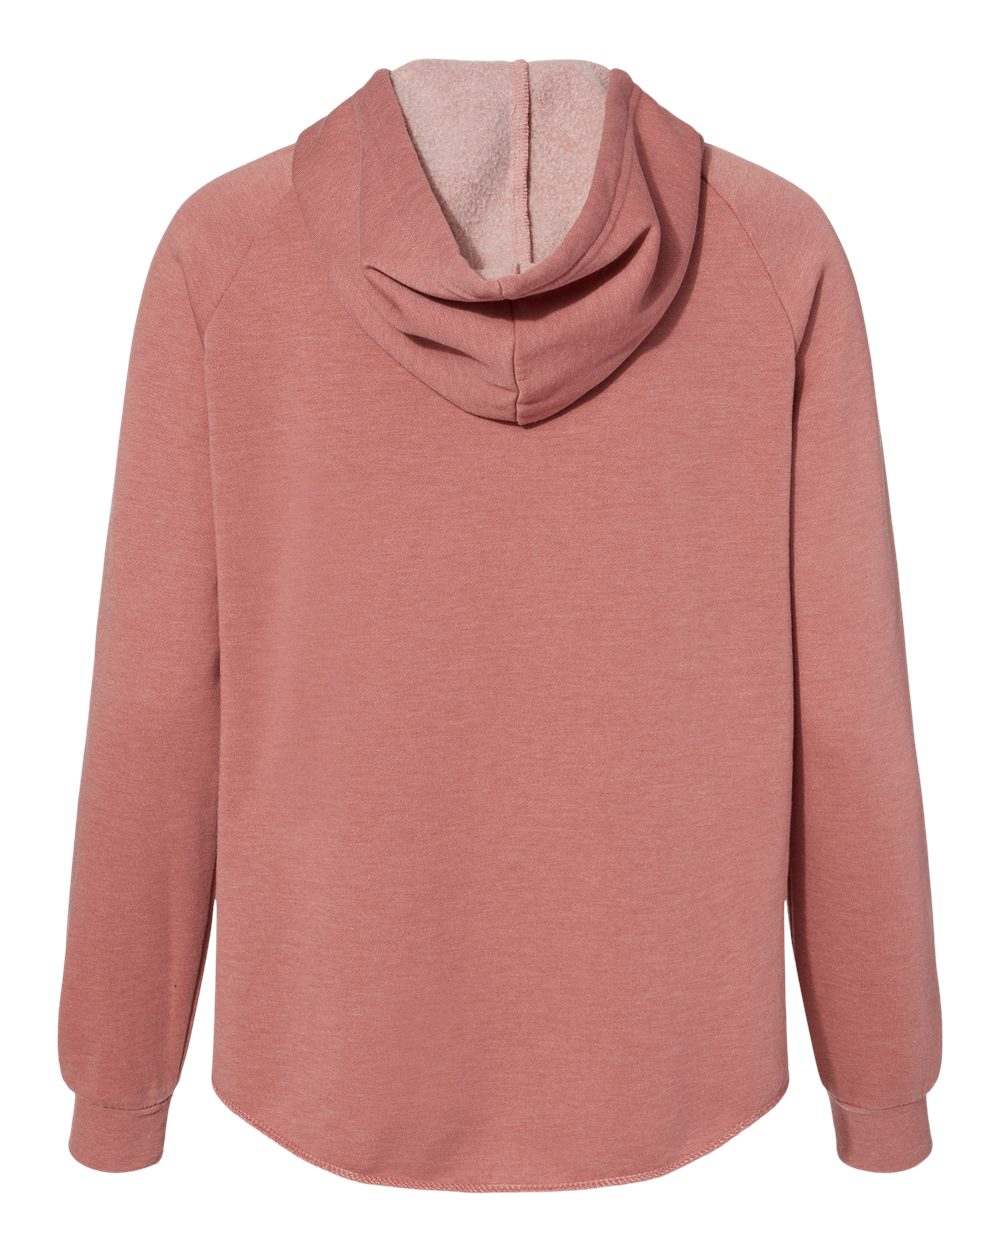 Independent-Trading-Co-Women-039-s-Wave-Wash-Full-Zip-Hooded-Sweatshirt-PRM2500Z thumbnail 12